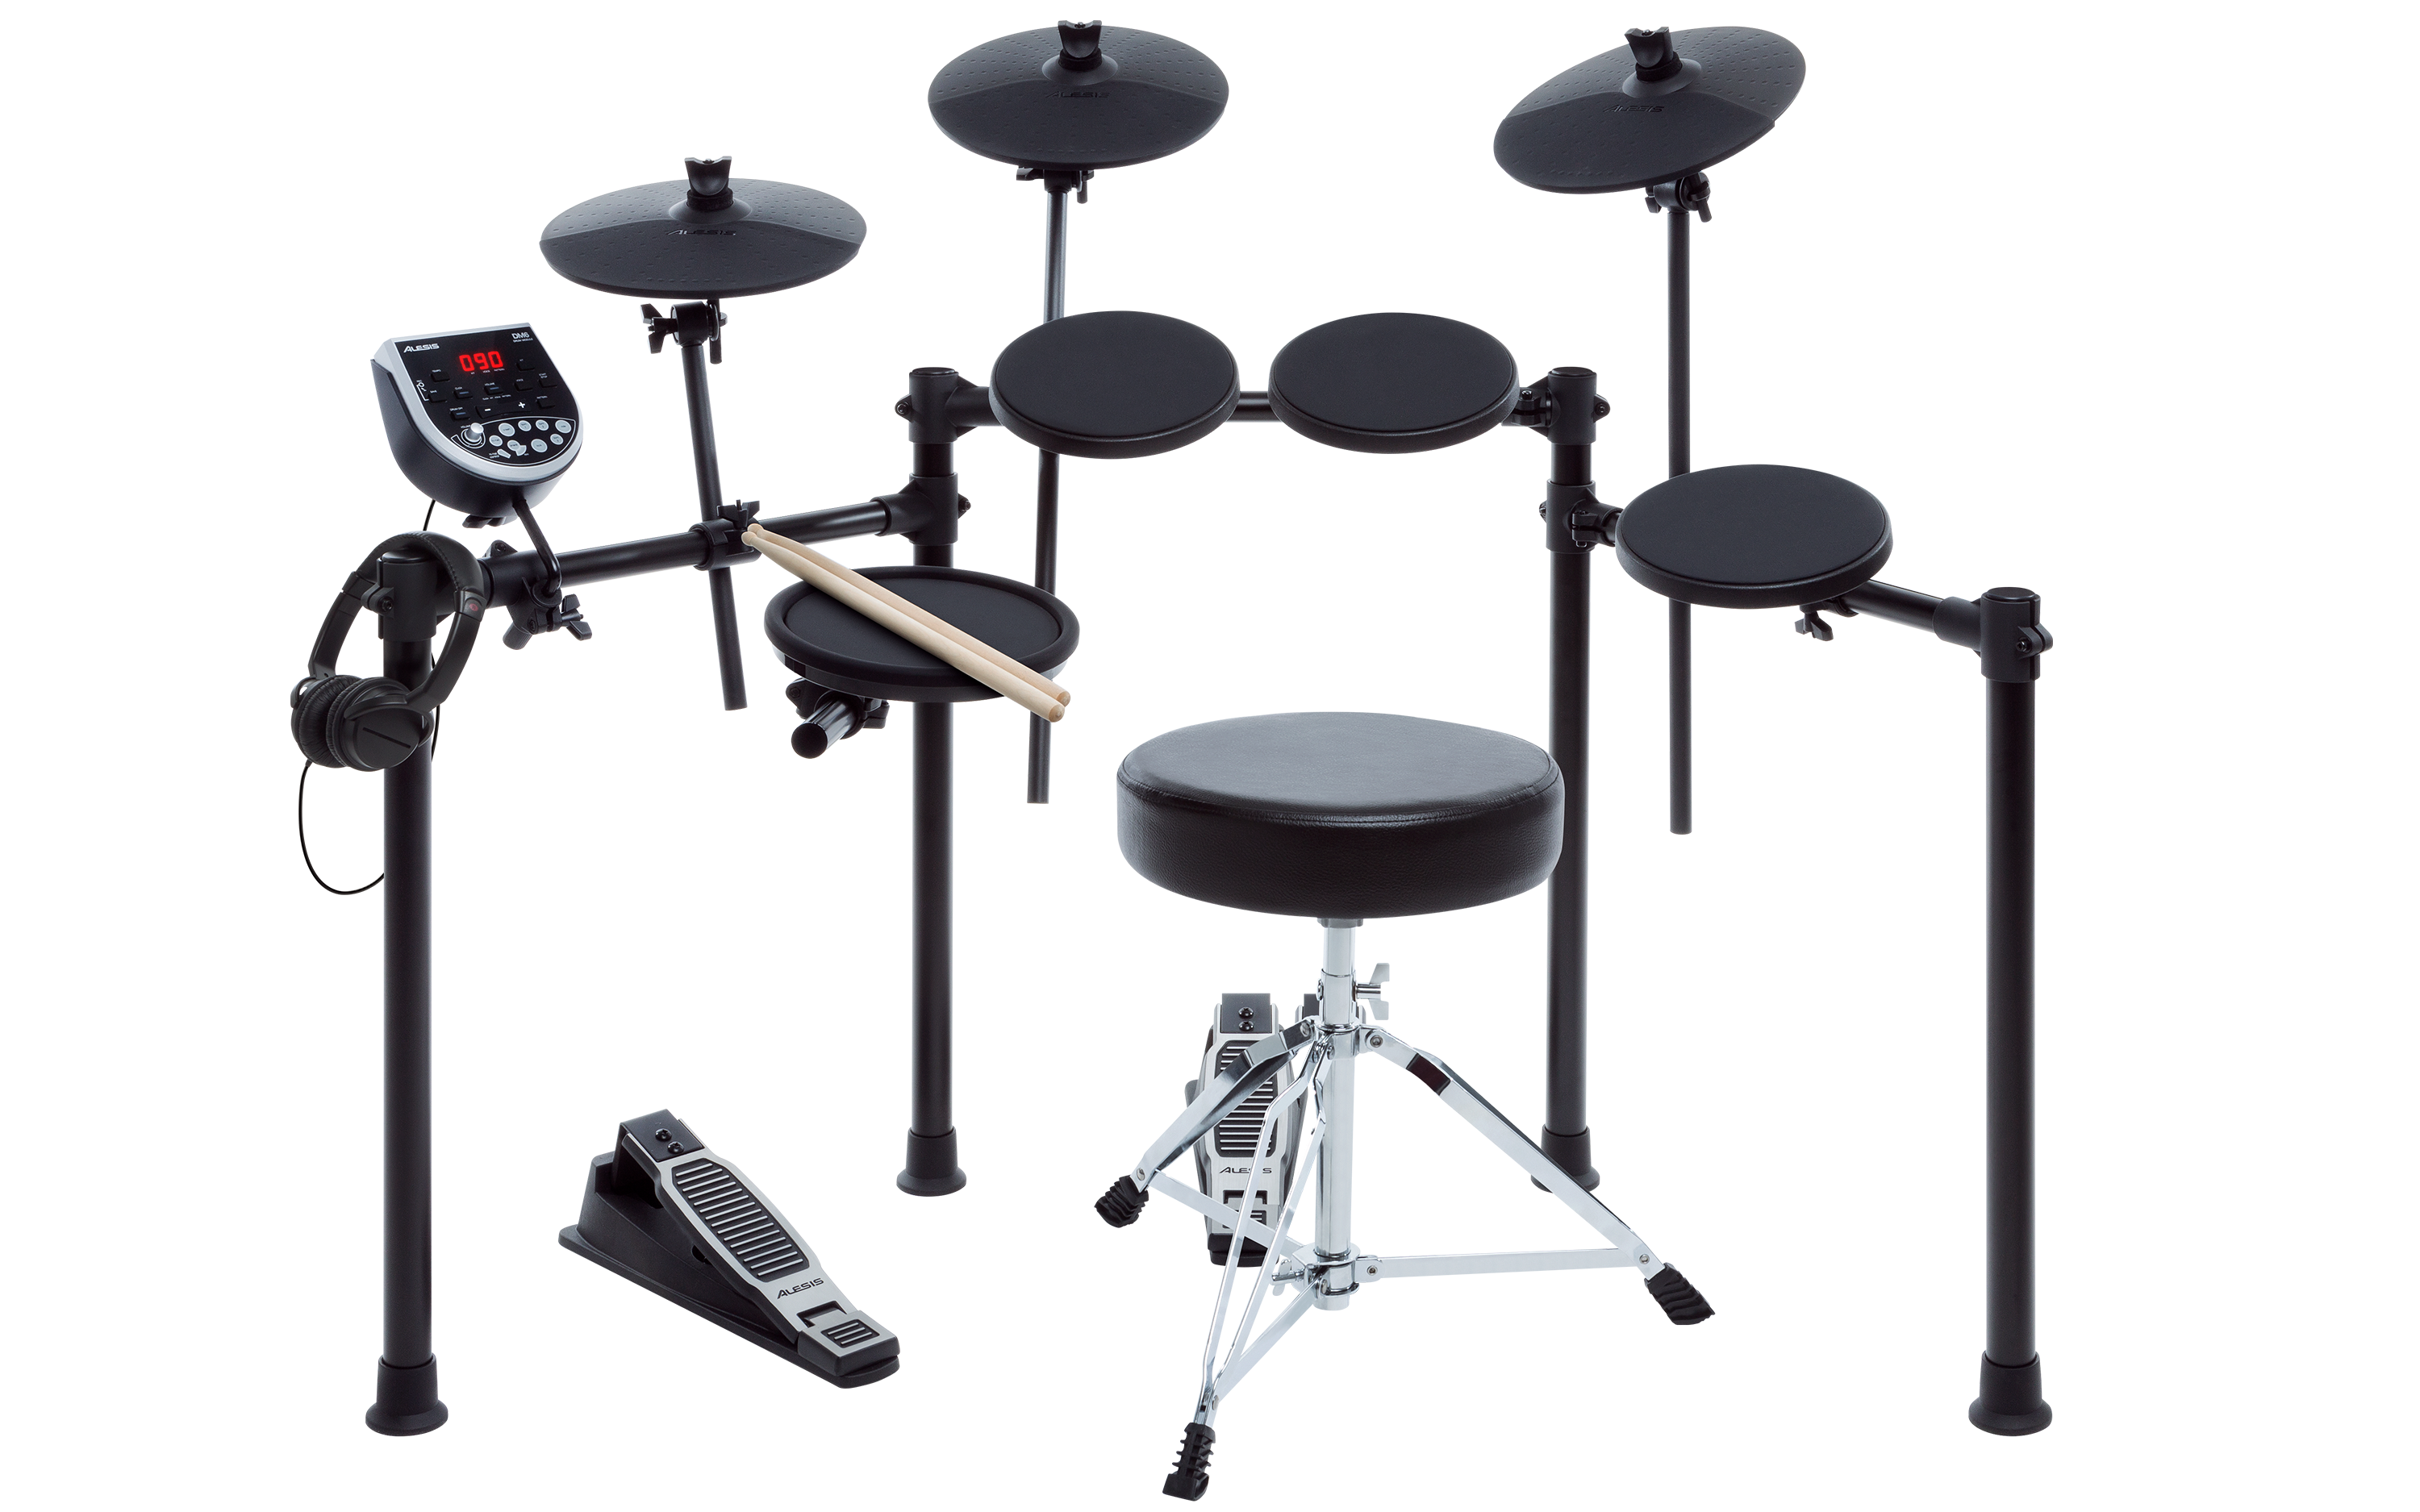 The Alesis Burst Kit